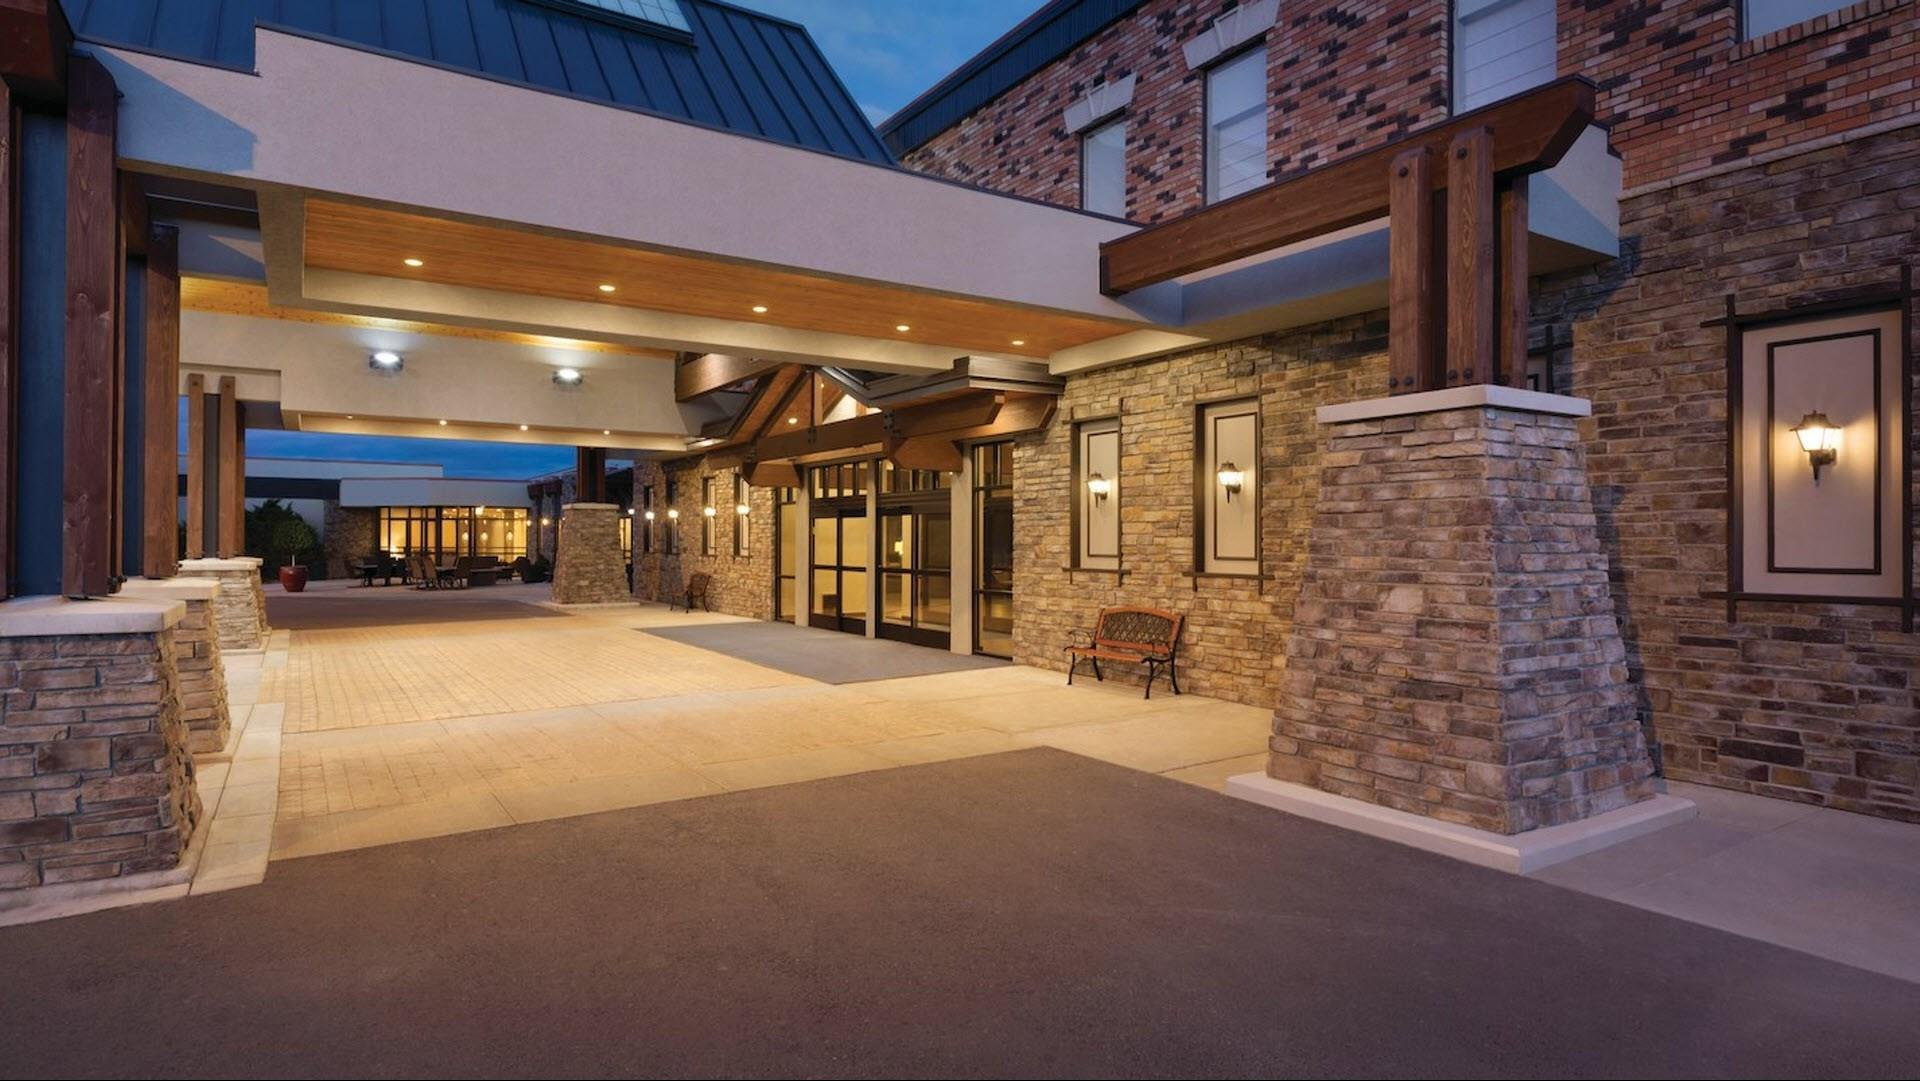 Montana, USA Hotels. Find Event Venues and Meeting Space in Montana ...